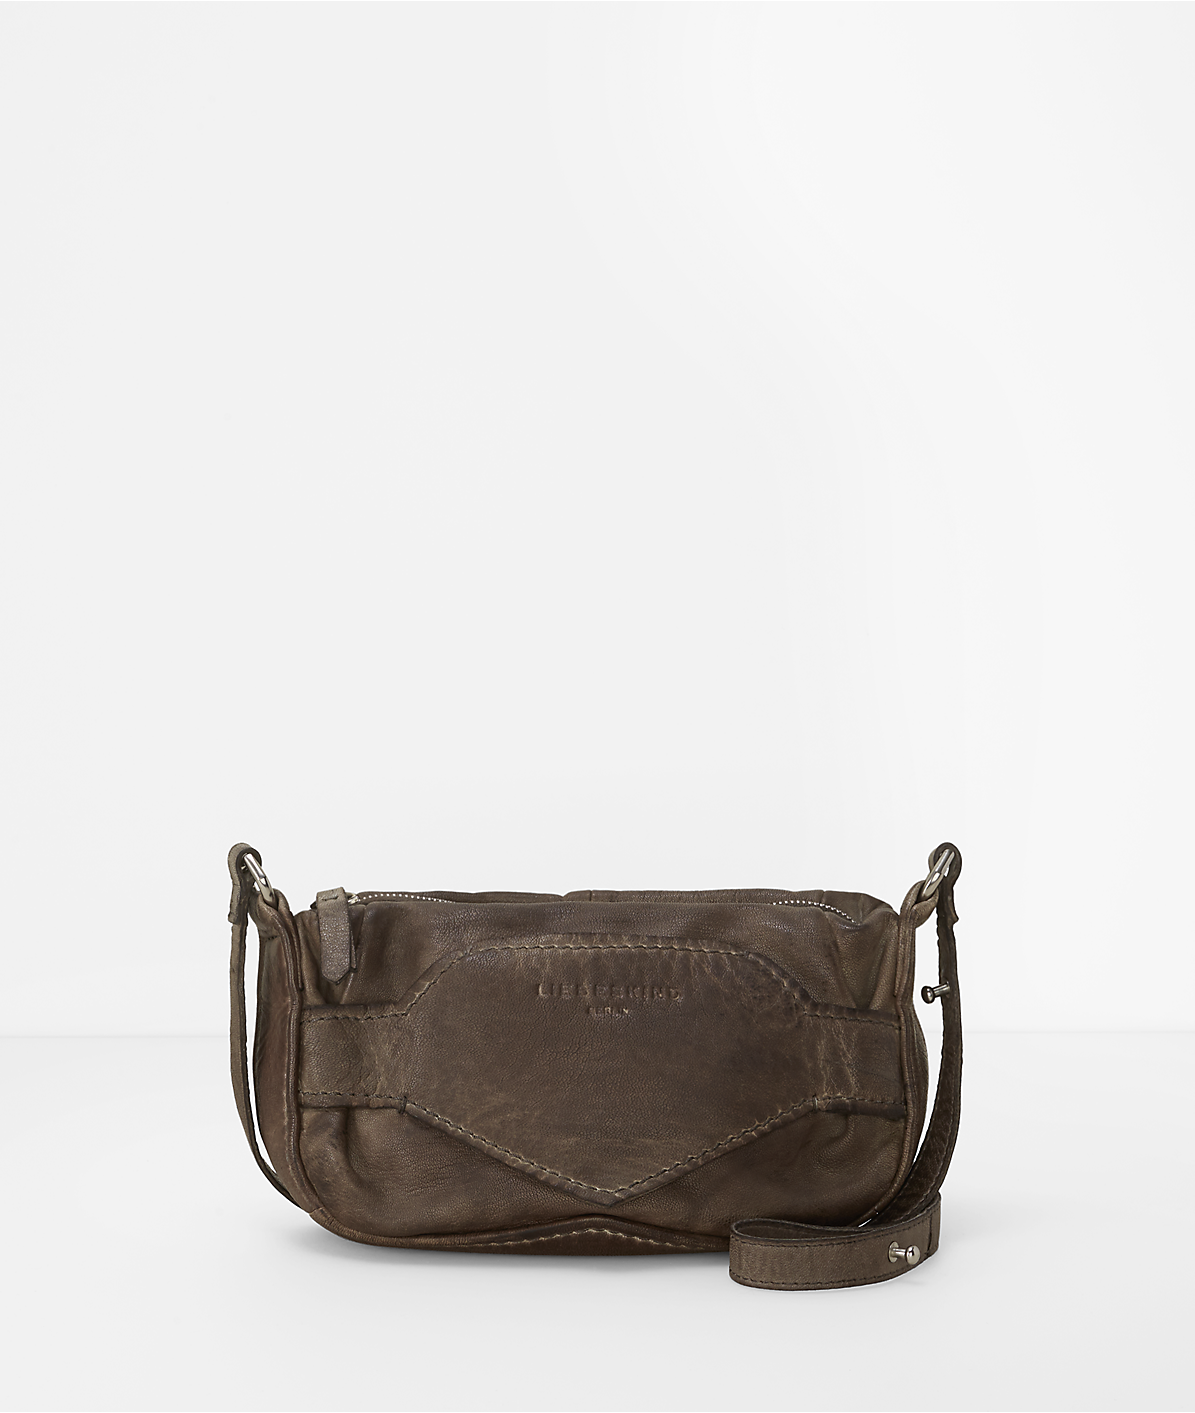 Matala cross-body bag from liebeskind